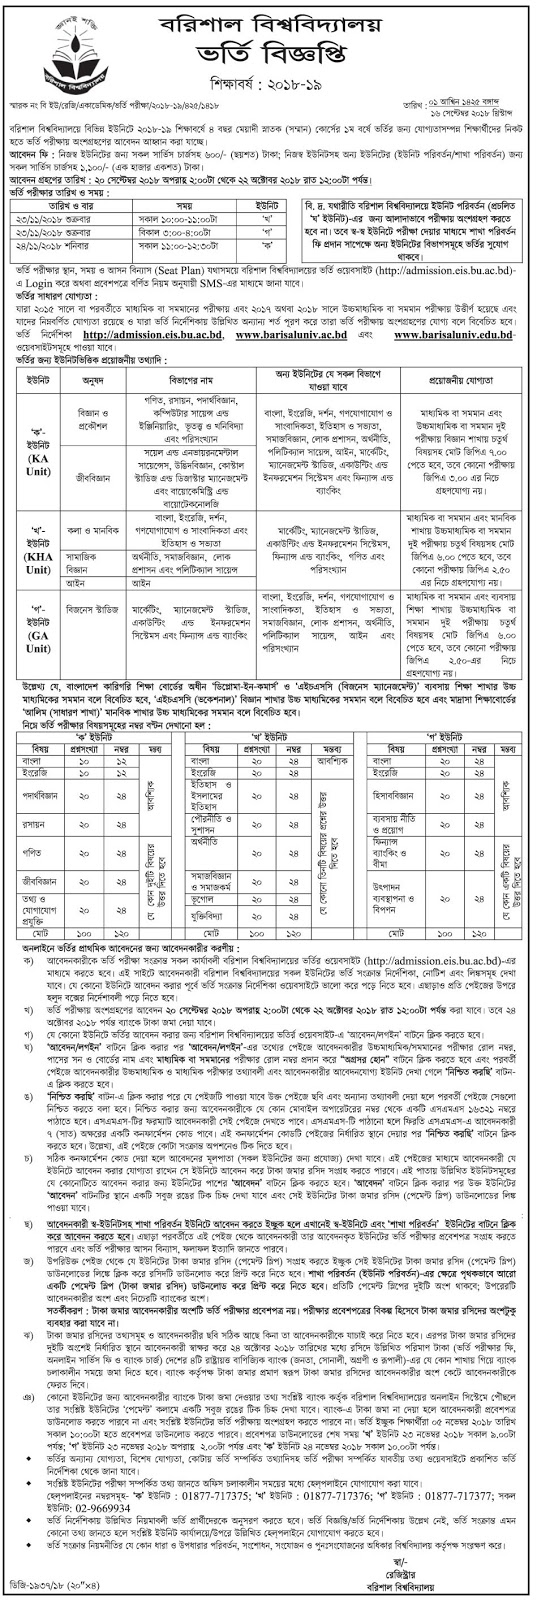 University Of Barisal Admission Test Circular 2018-2019